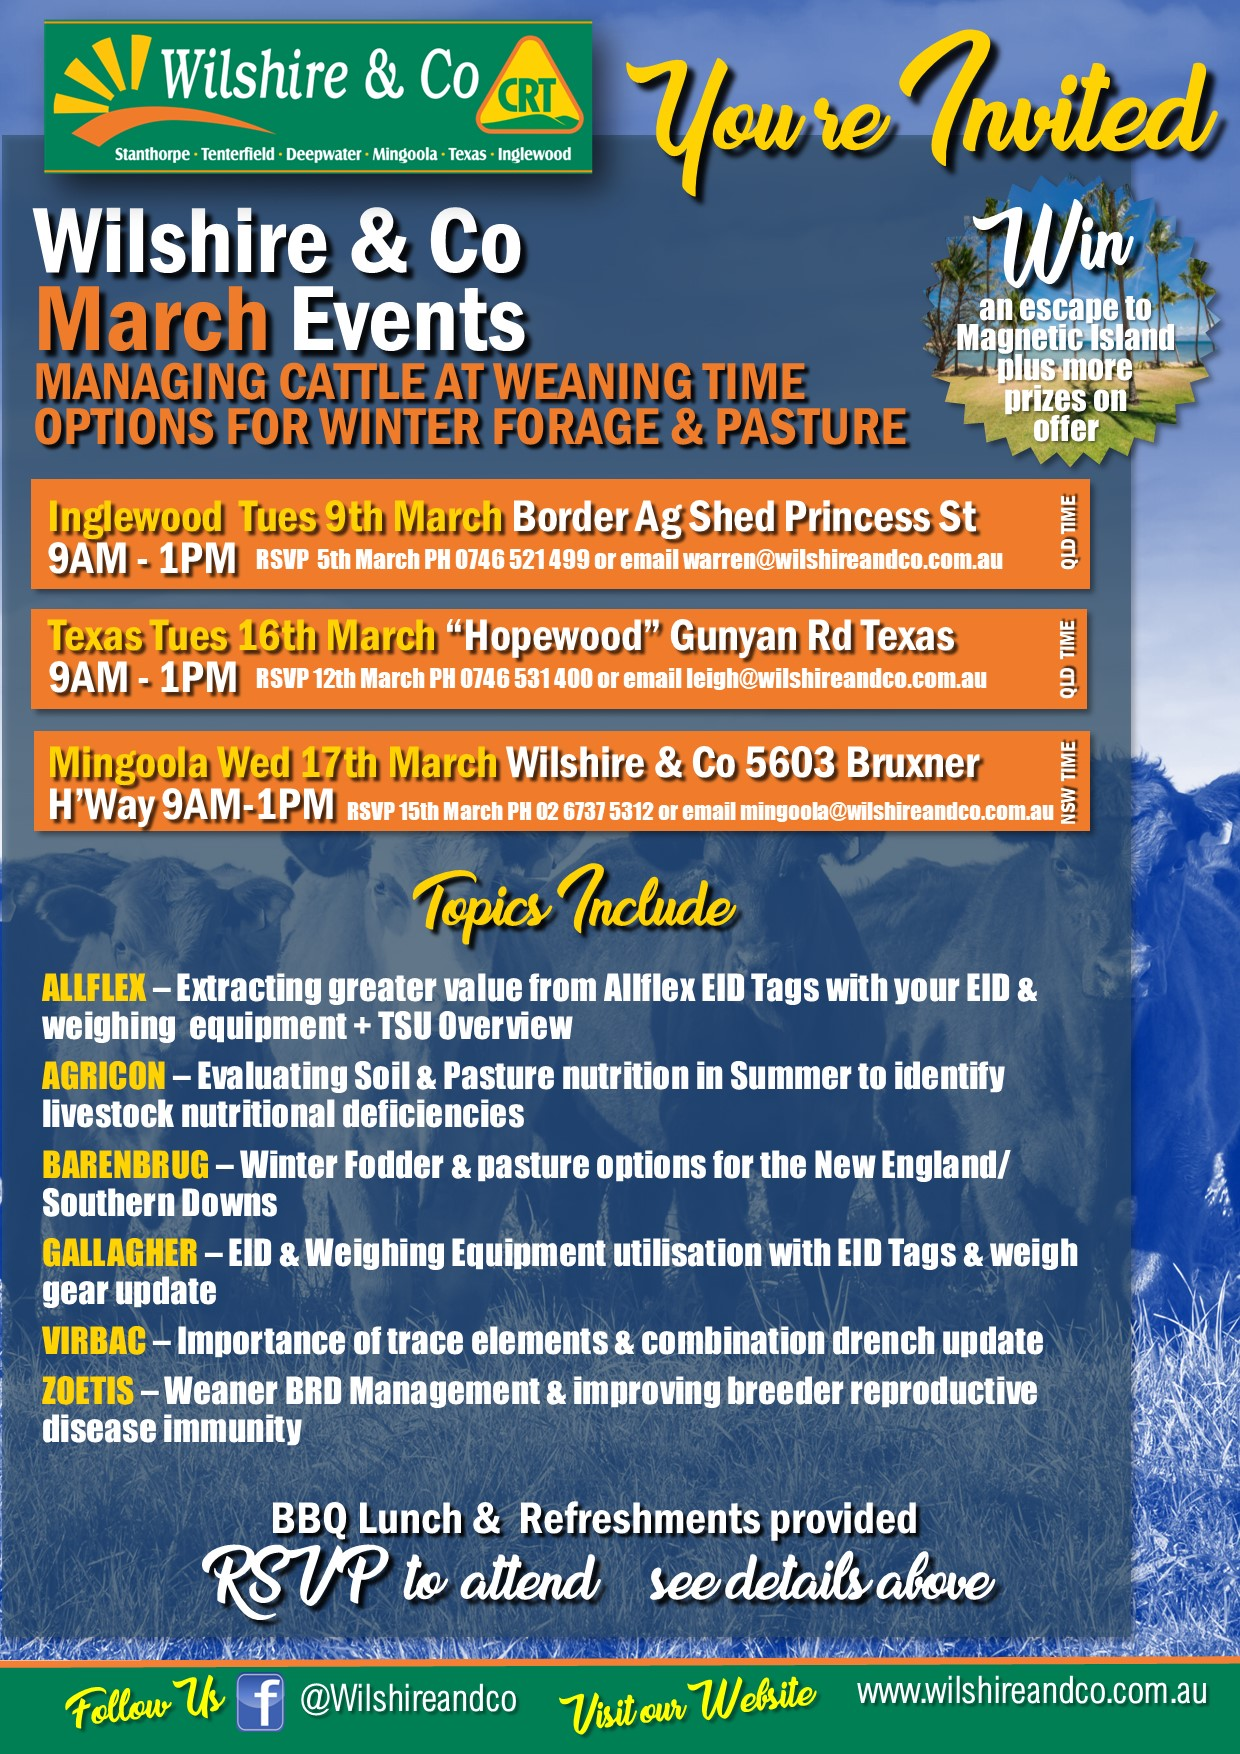 wilshire-co-invitation-march-events-electronic-version-2021.jpg